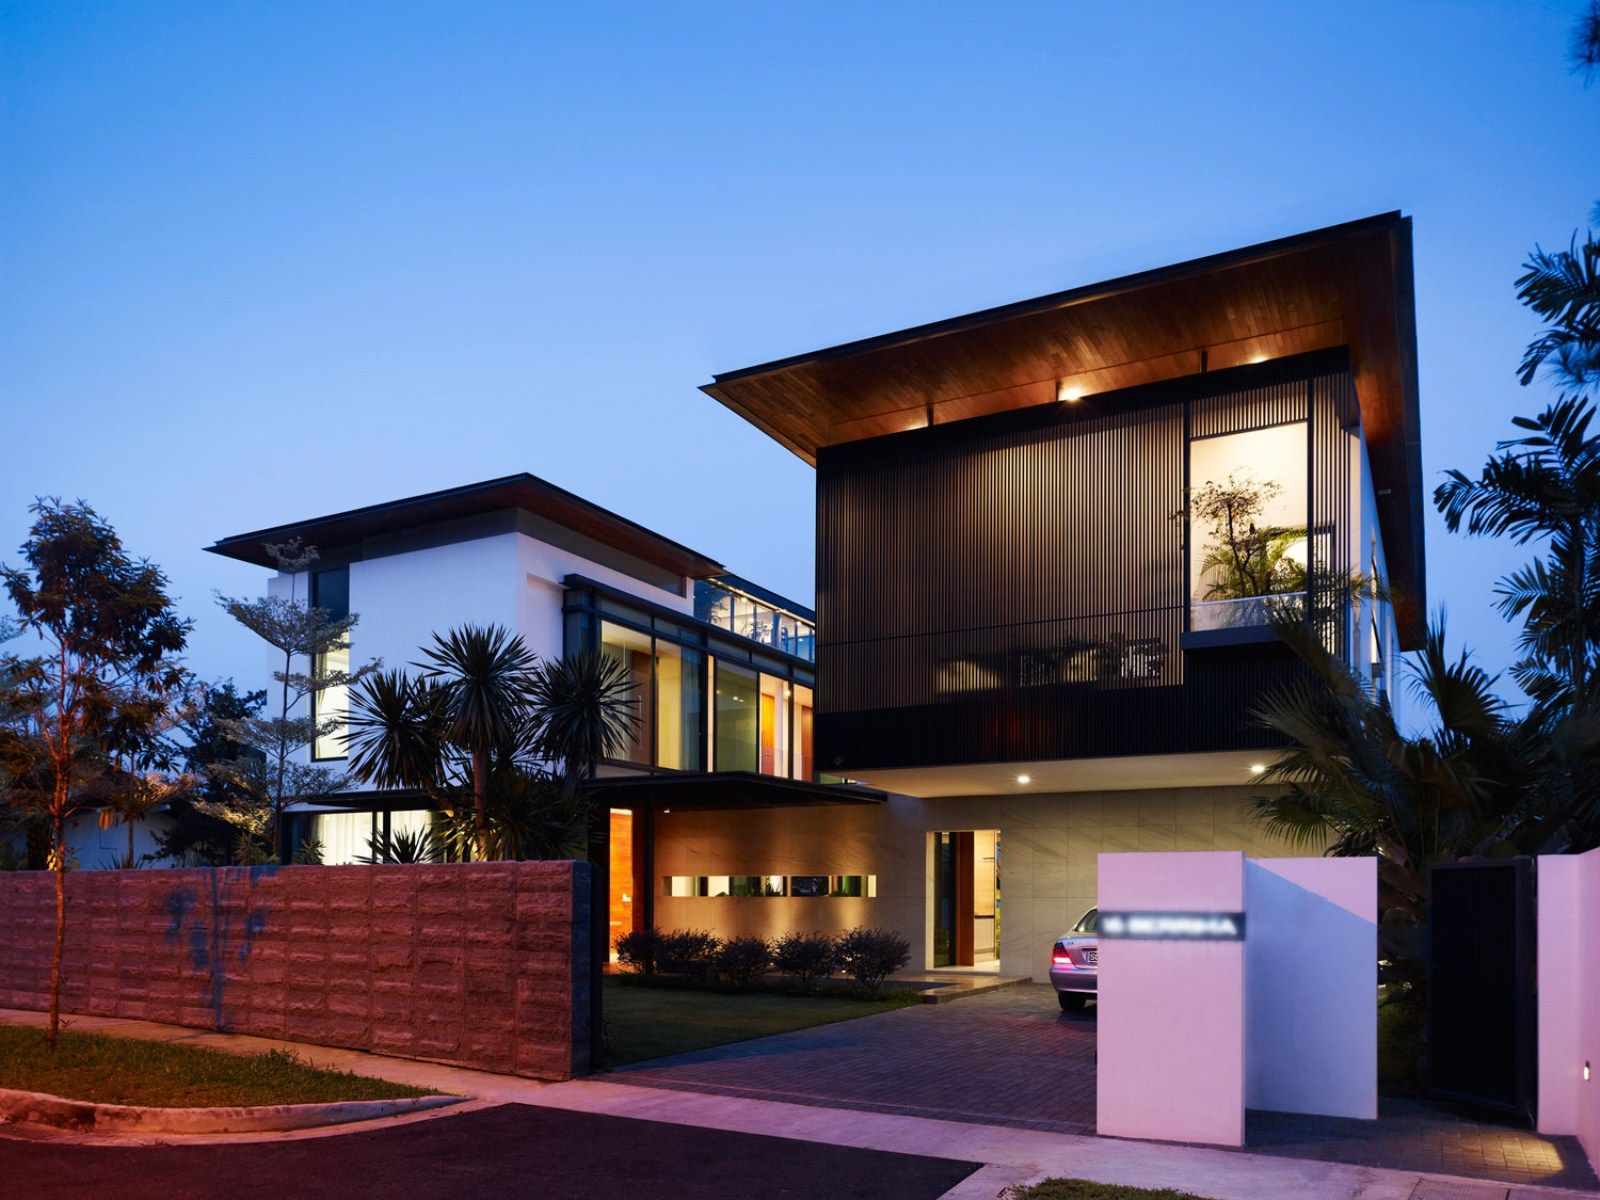 Architecture Modern Ideas Tropical House Facade Design With